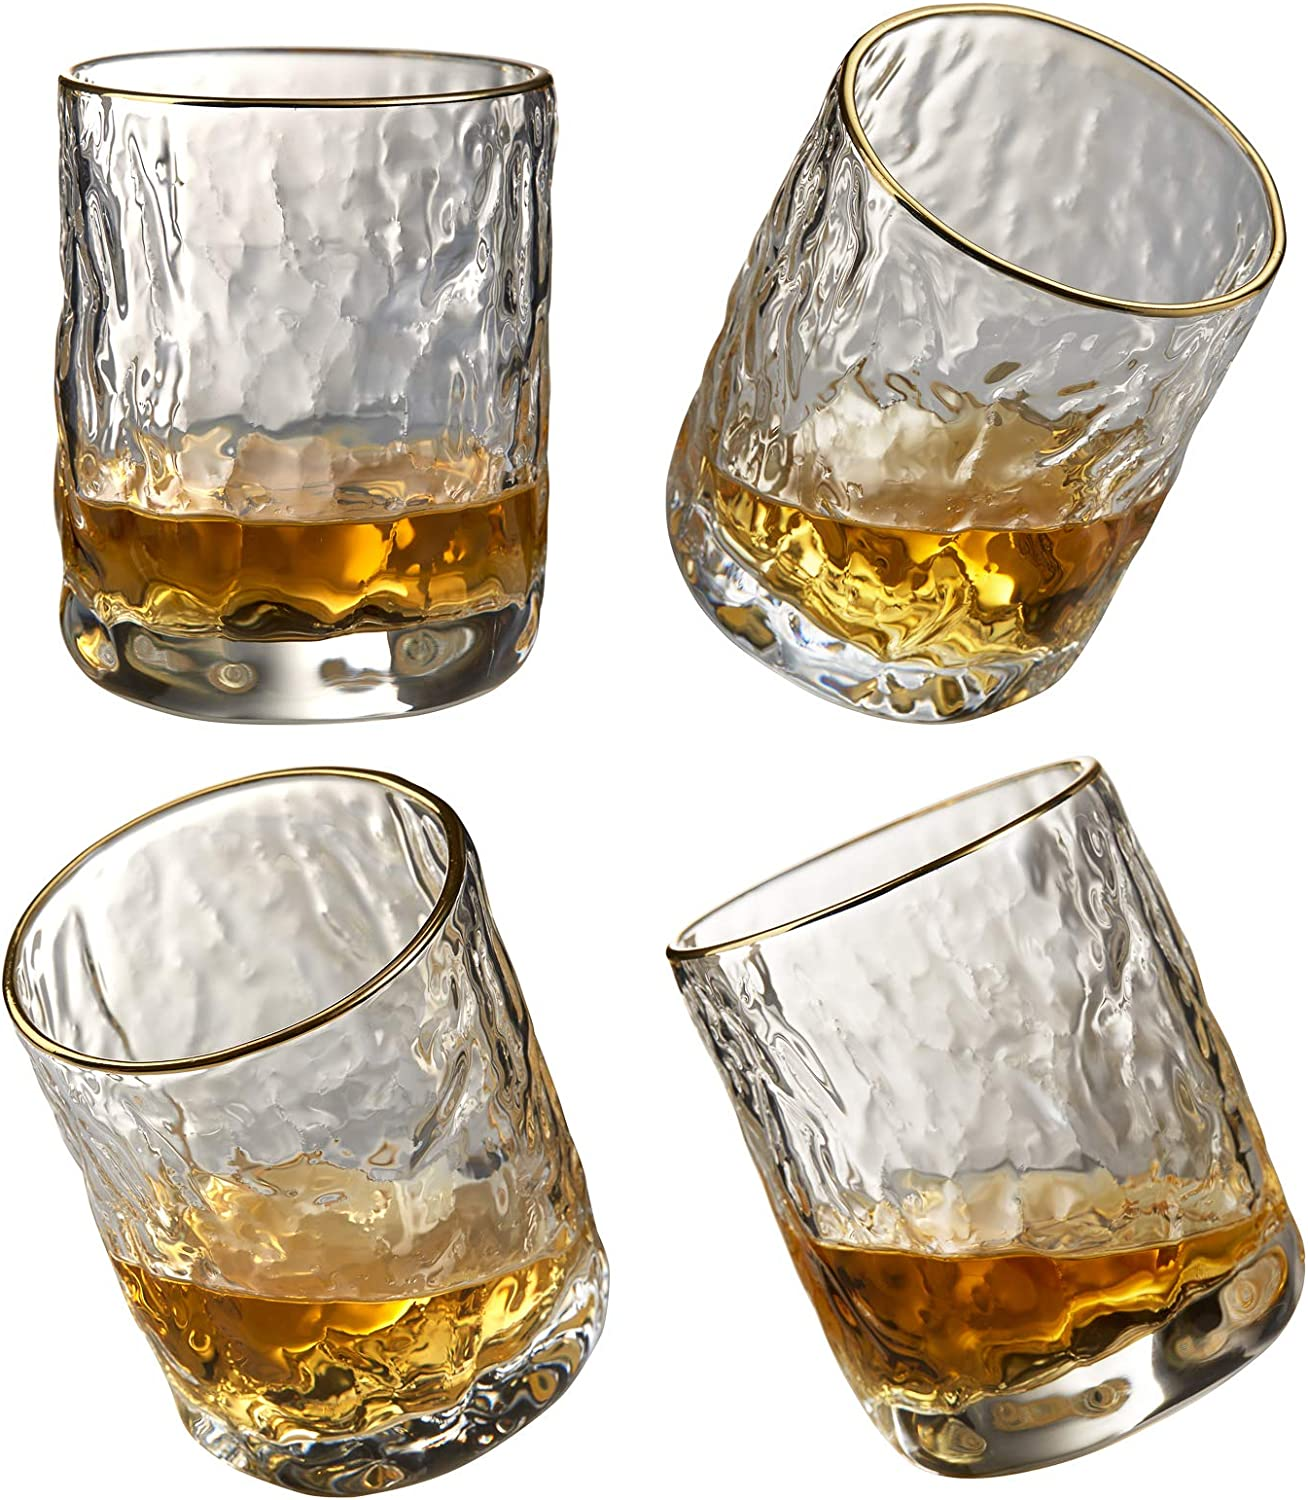 Interoceanic Whiskey Glasses, 10 oz Rocks Lowball Bar Glasses For Scotch, Bourbon, Cocktails - Old Fashioned Cocktail Tumblers & stemless wine glass set of 4